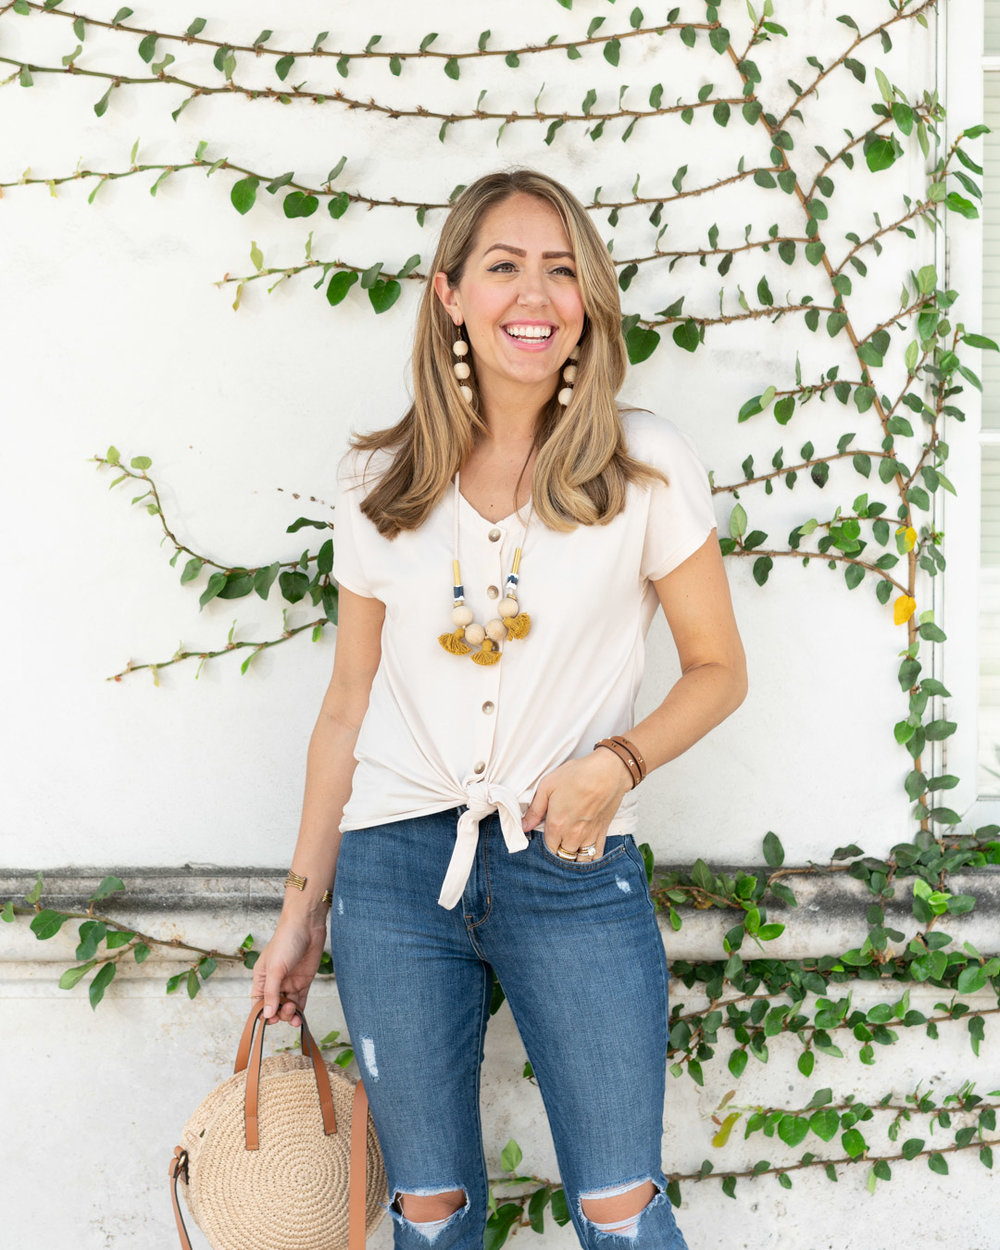 915c02212d4 I m so excited to share item  3 from my fair trade clothing line today!  This beautiful organic cotton top with buttons and tie front was modeled  after a ...